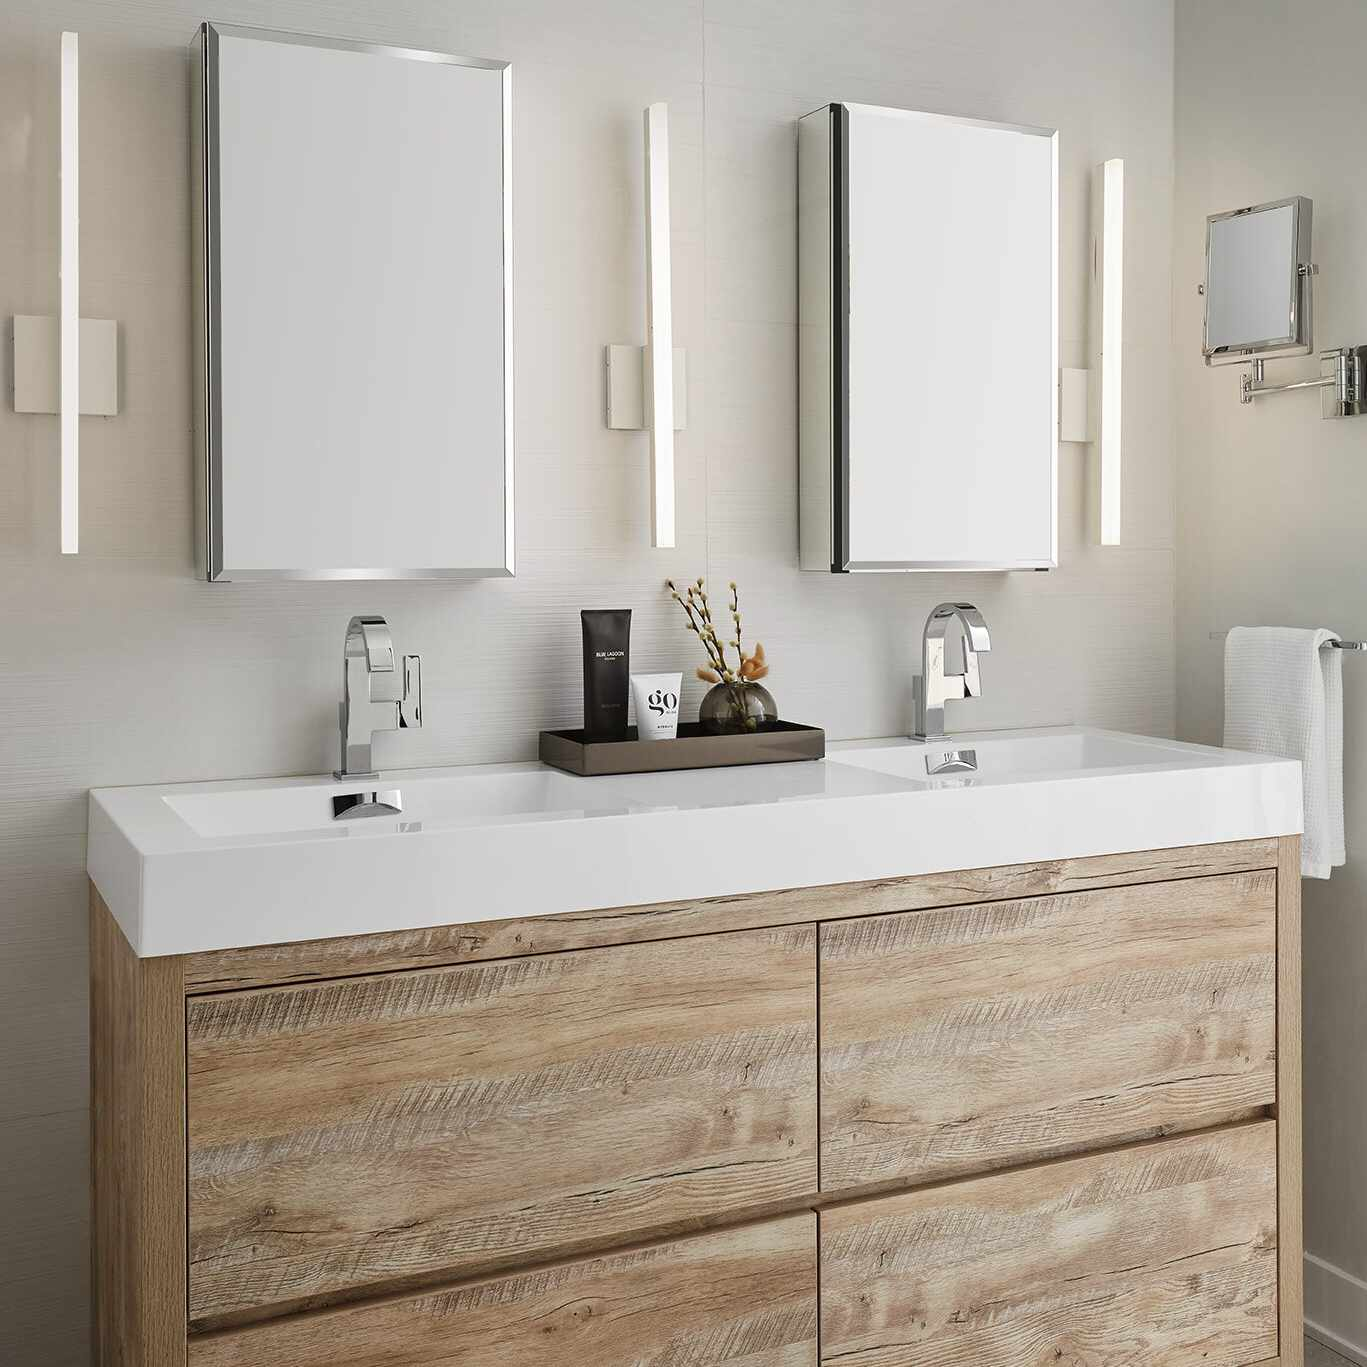 Modern double vanity with two medicine cabinets.